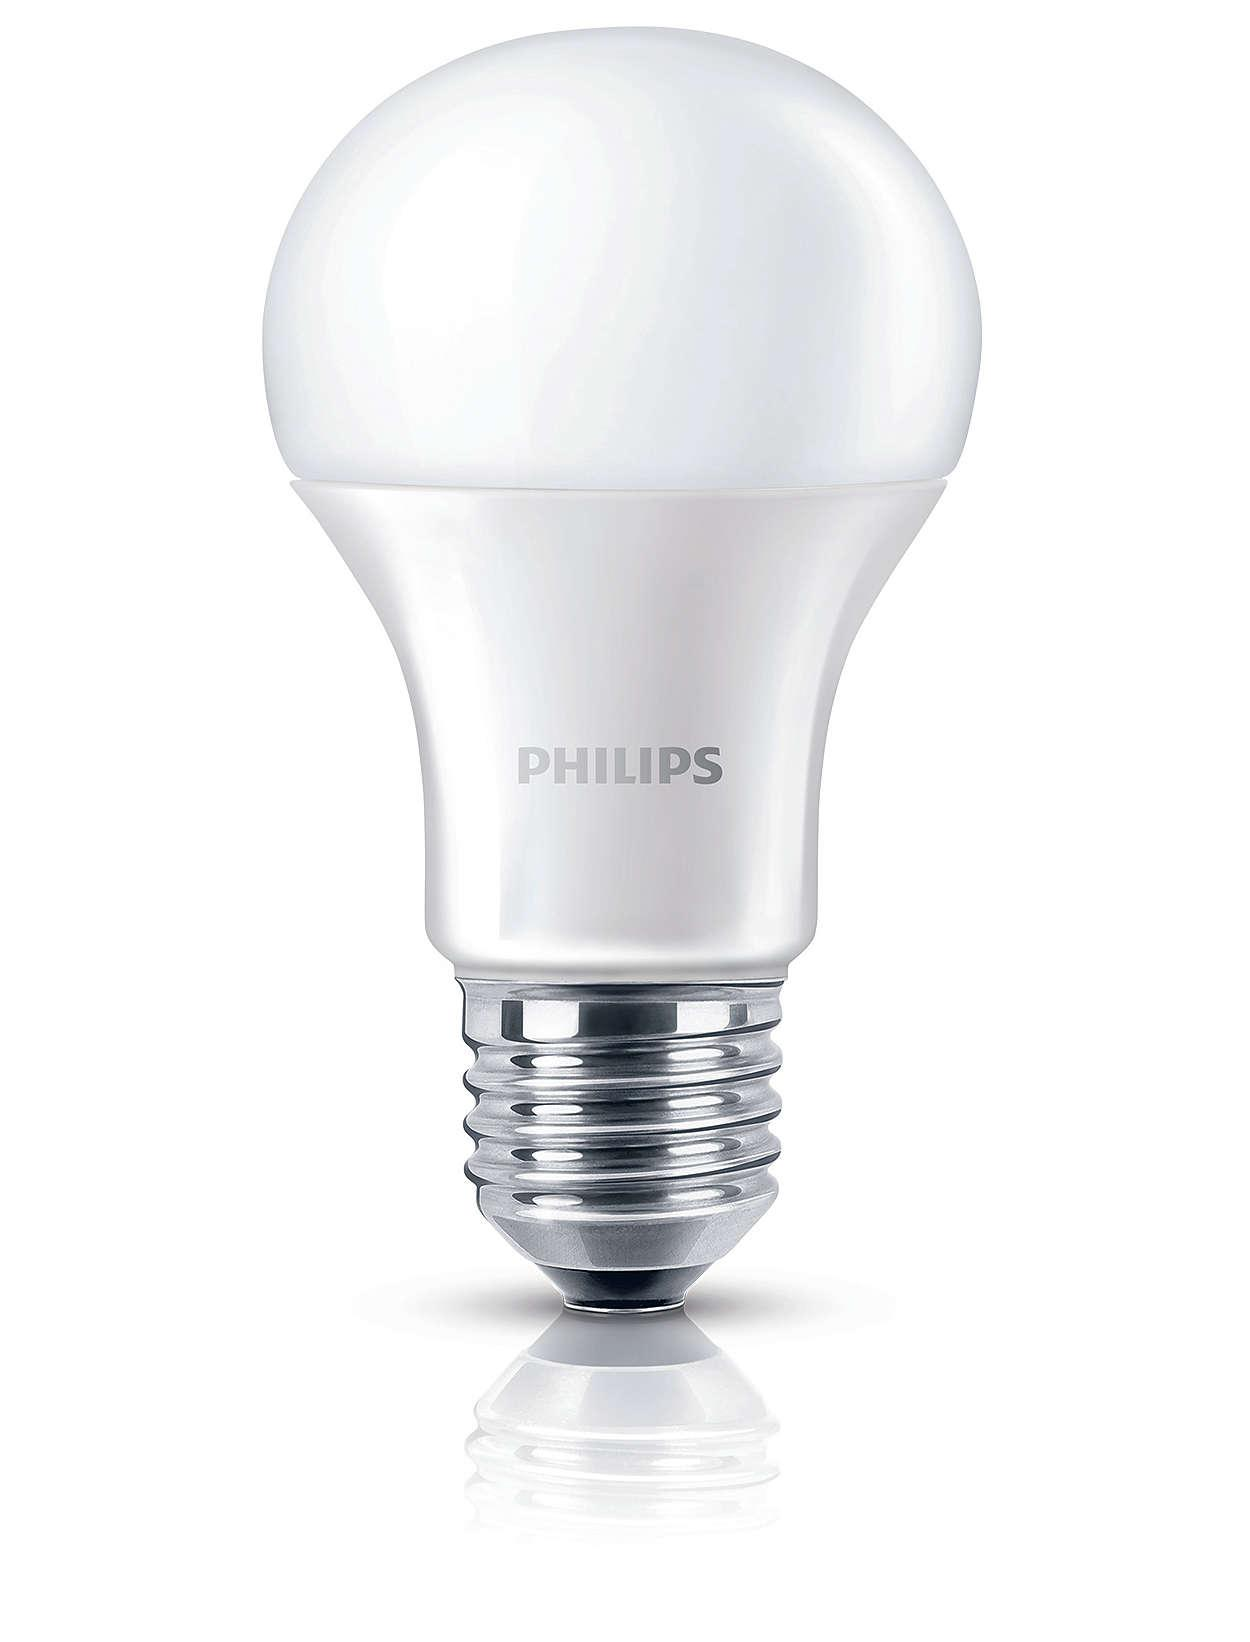 [Bundle of 4] PHILIPS SceneSwitch LED Bulb 8W E27 220-240V Cool Daylight (6500k) & Warm White (2700k)